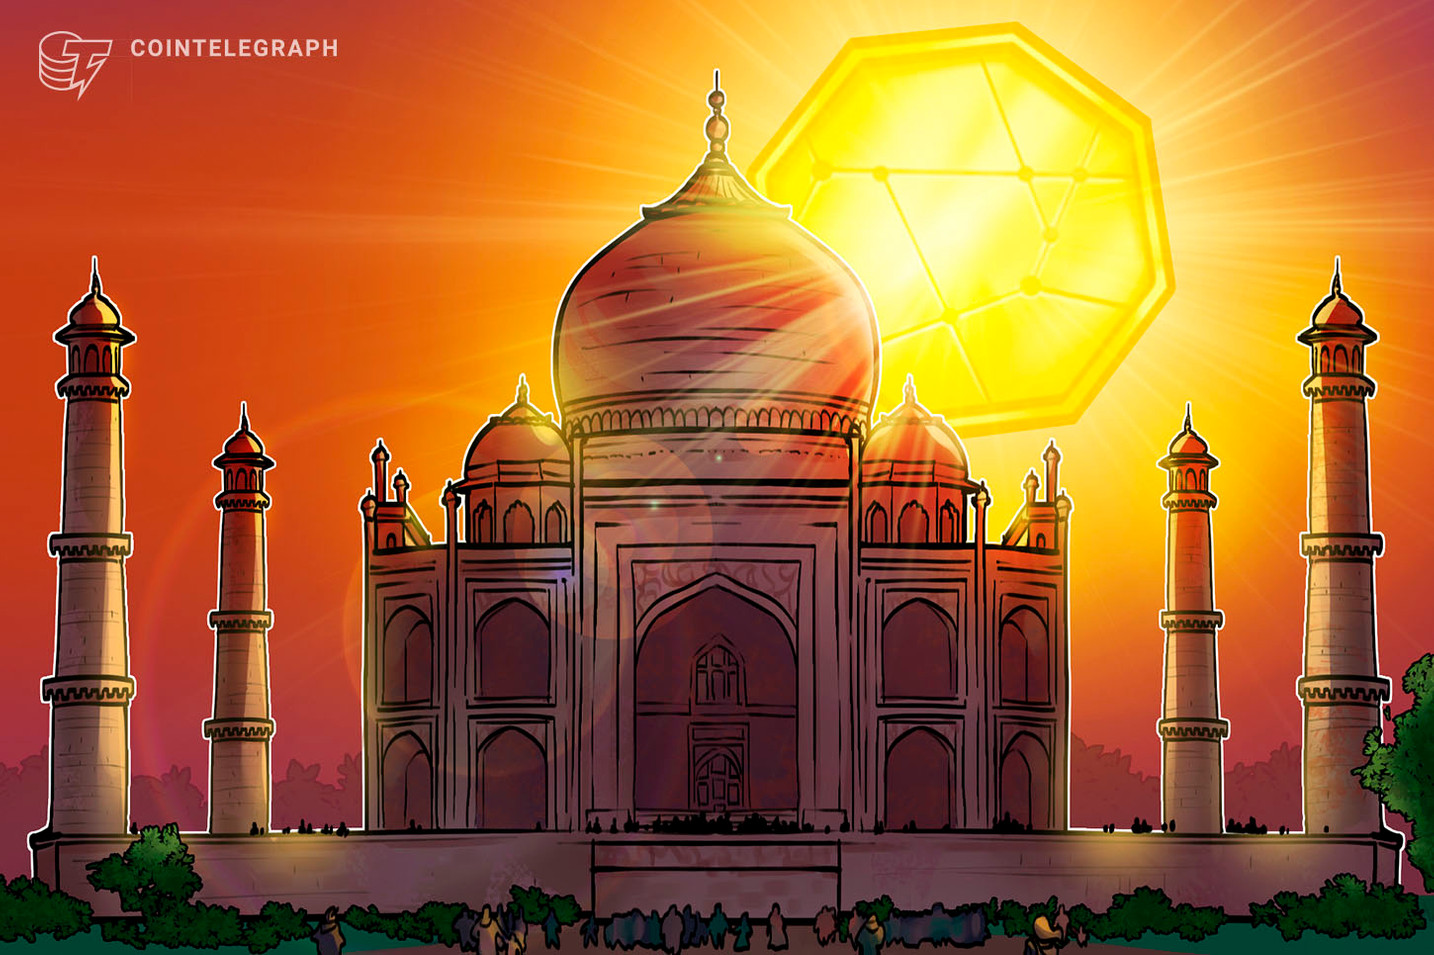 Mercurial on crypto: Will India's latest stance lead to positive regulation?